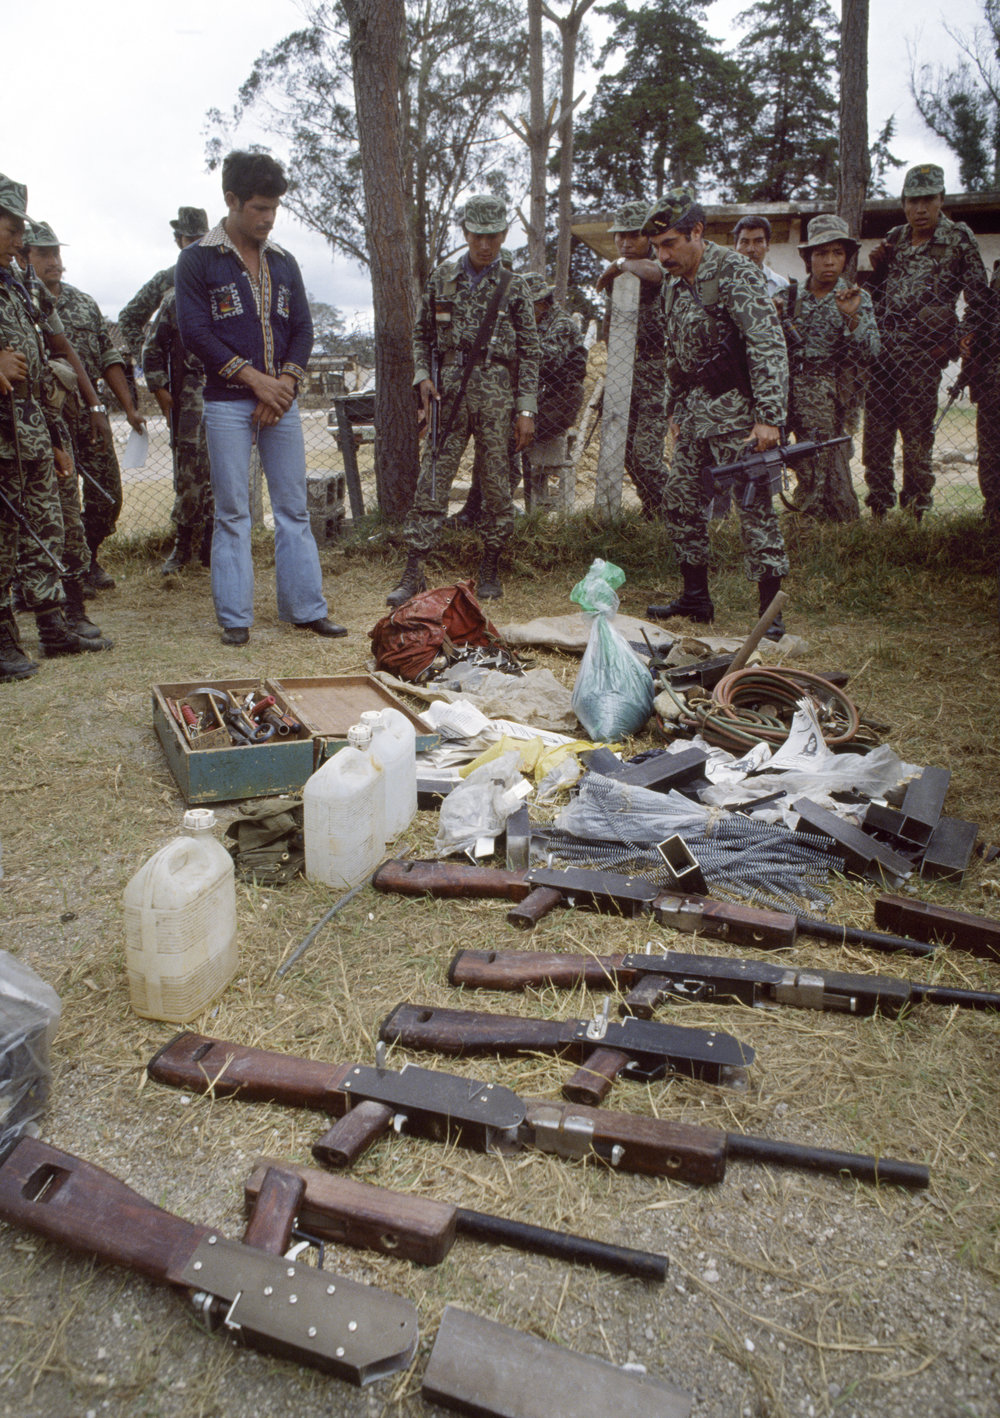 Guatemalan army Colonel Lima Estrada looks over captured weapons and explosives found in a Guerrilla Army of the Poor, EGP, safe house outside of Santa Cruz del Quiché, Guatemala on February 1, 1982. Col. Lima Estrada was the commander of the El Quiché army garrison.